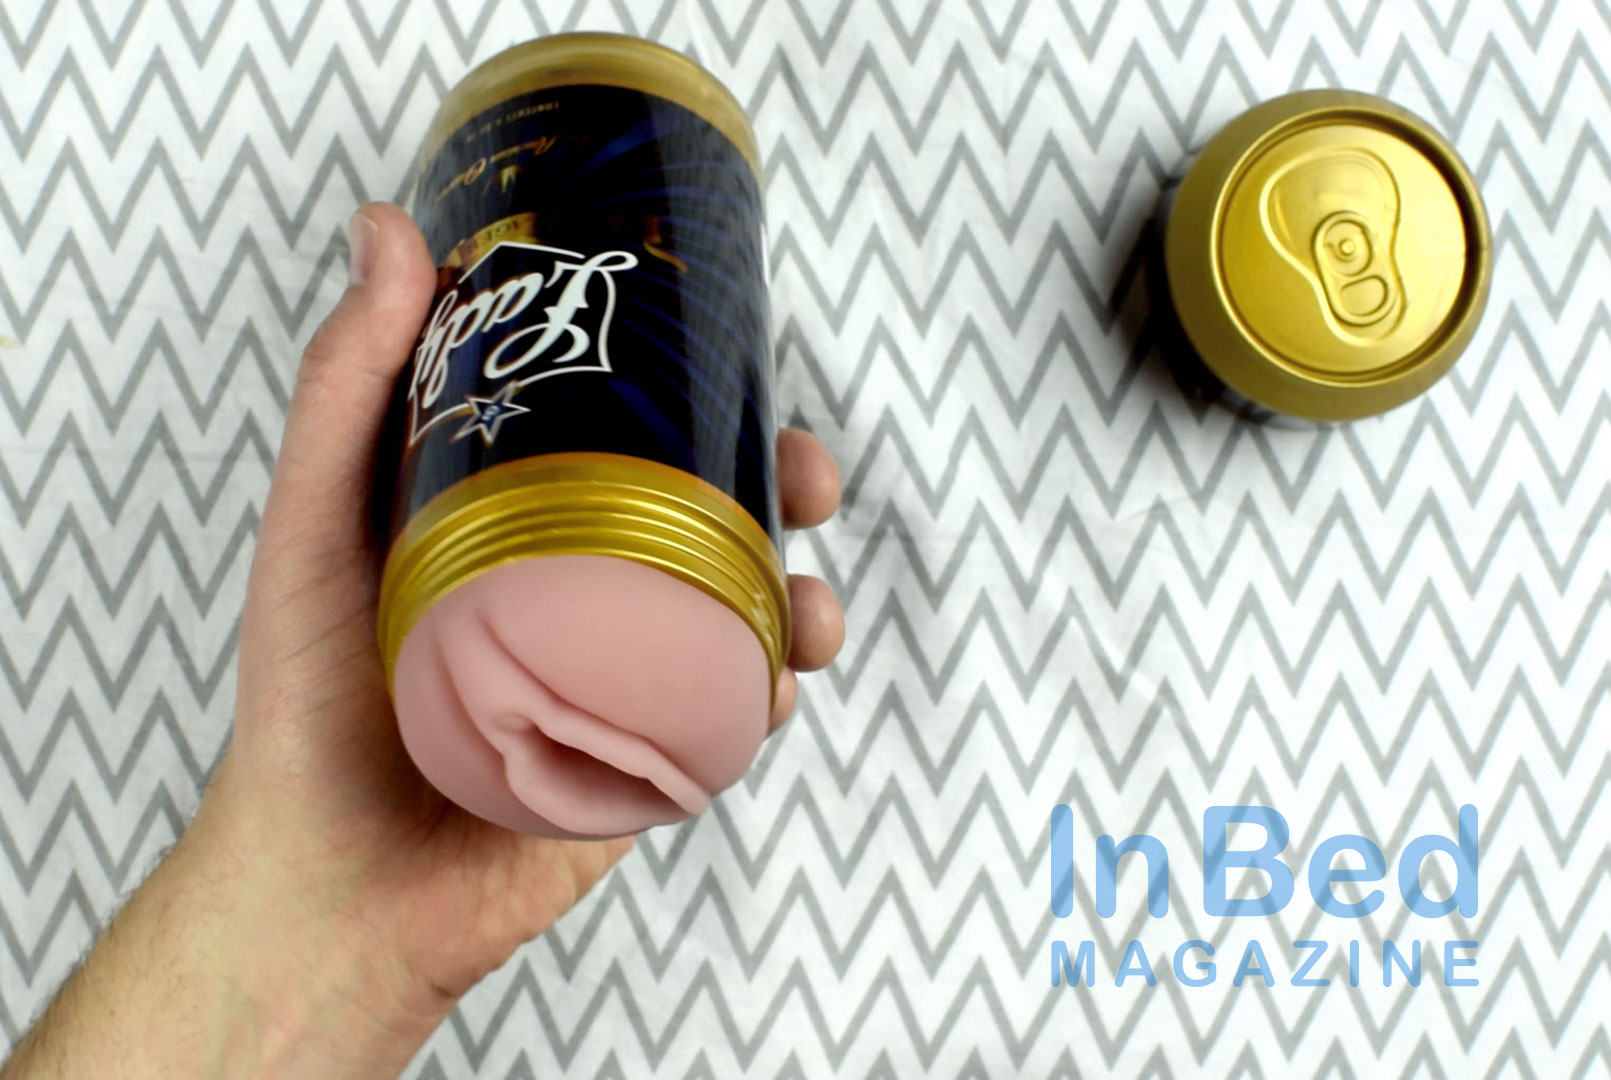 Fleshlight Lady Lager Sex in a Can in hand